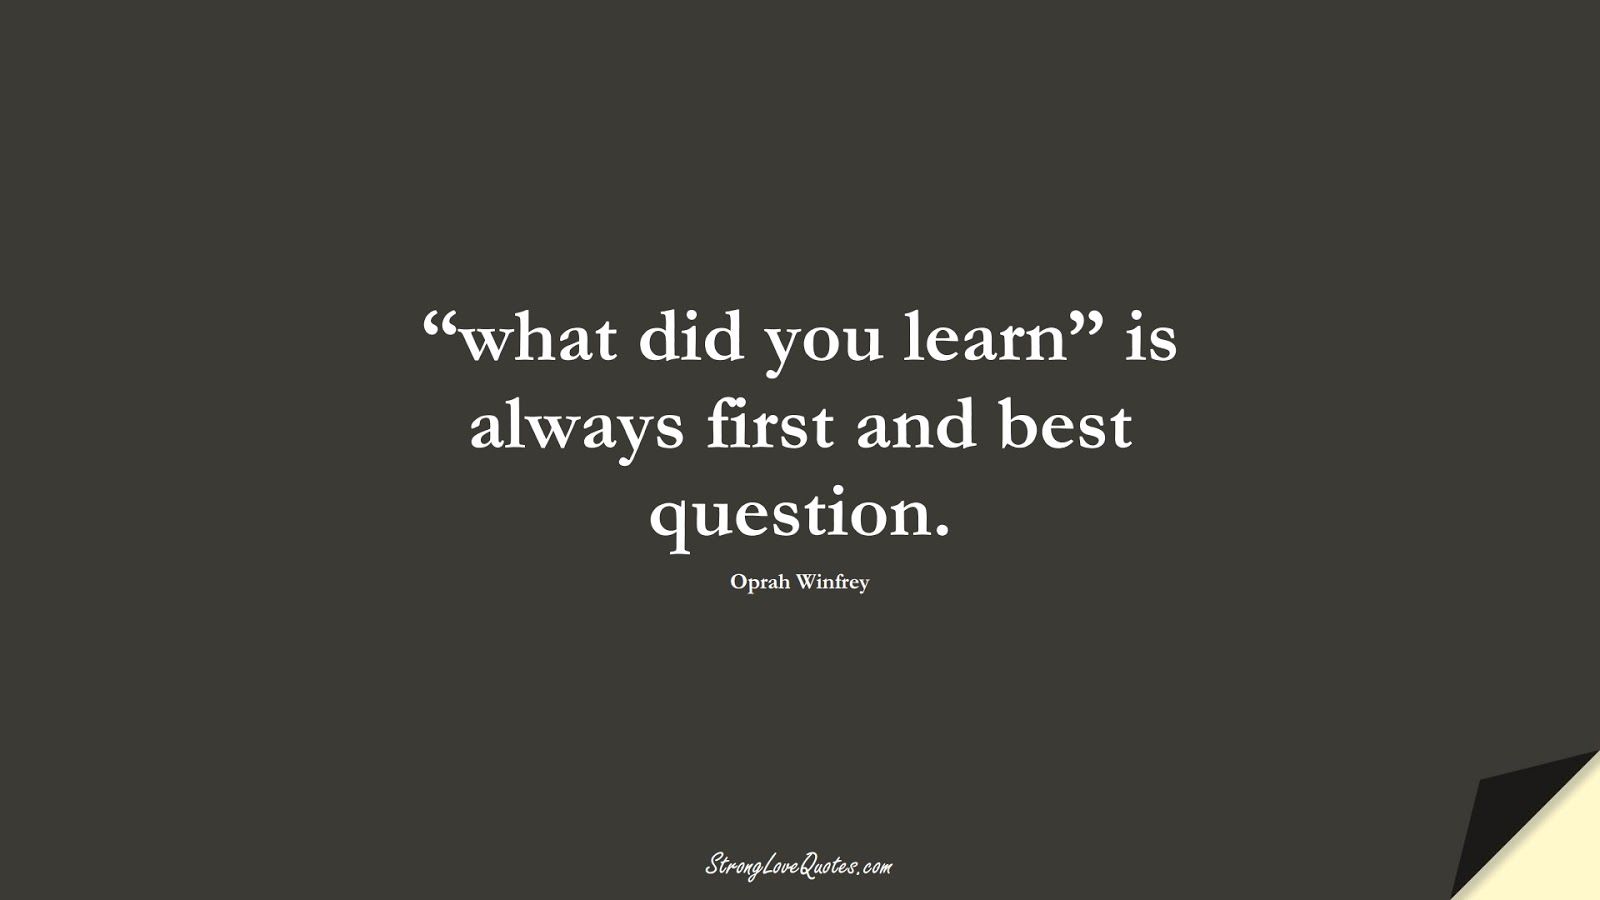 """""""what did you learn"""" is always first and best question. (Oprah Winfrey);  #LearningQuotes"""